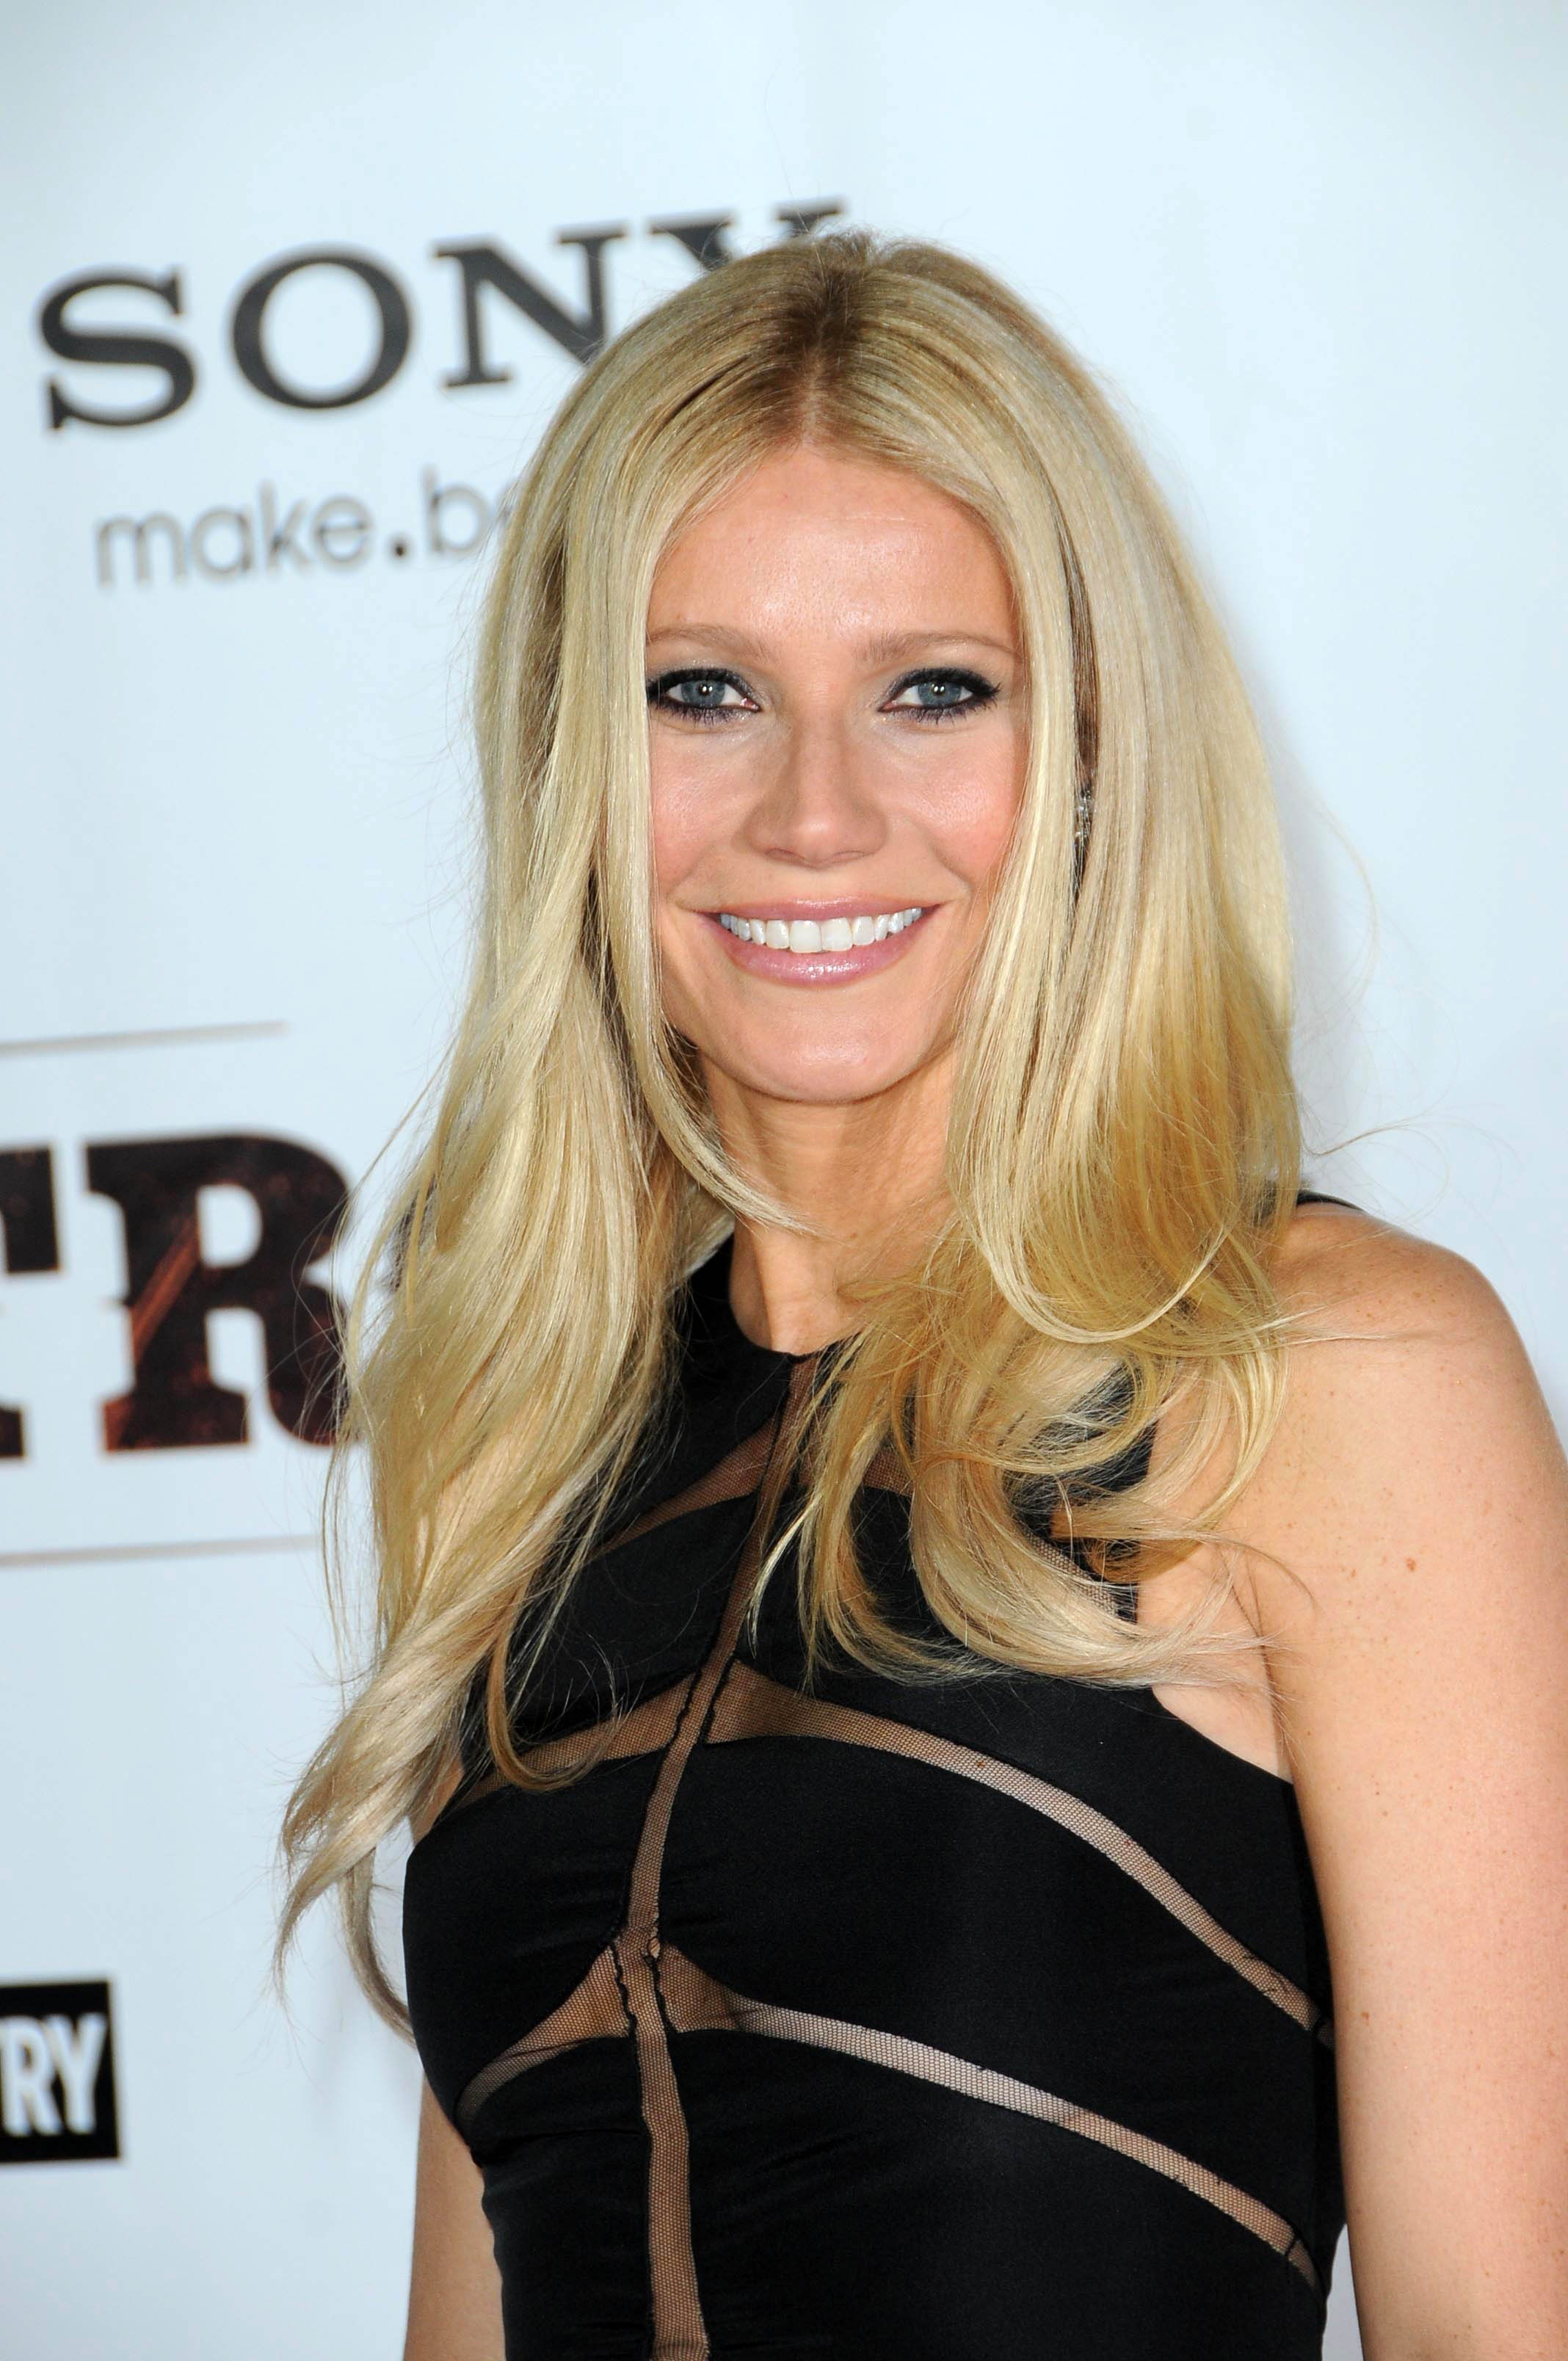 gwyneth paltrow - photo #37